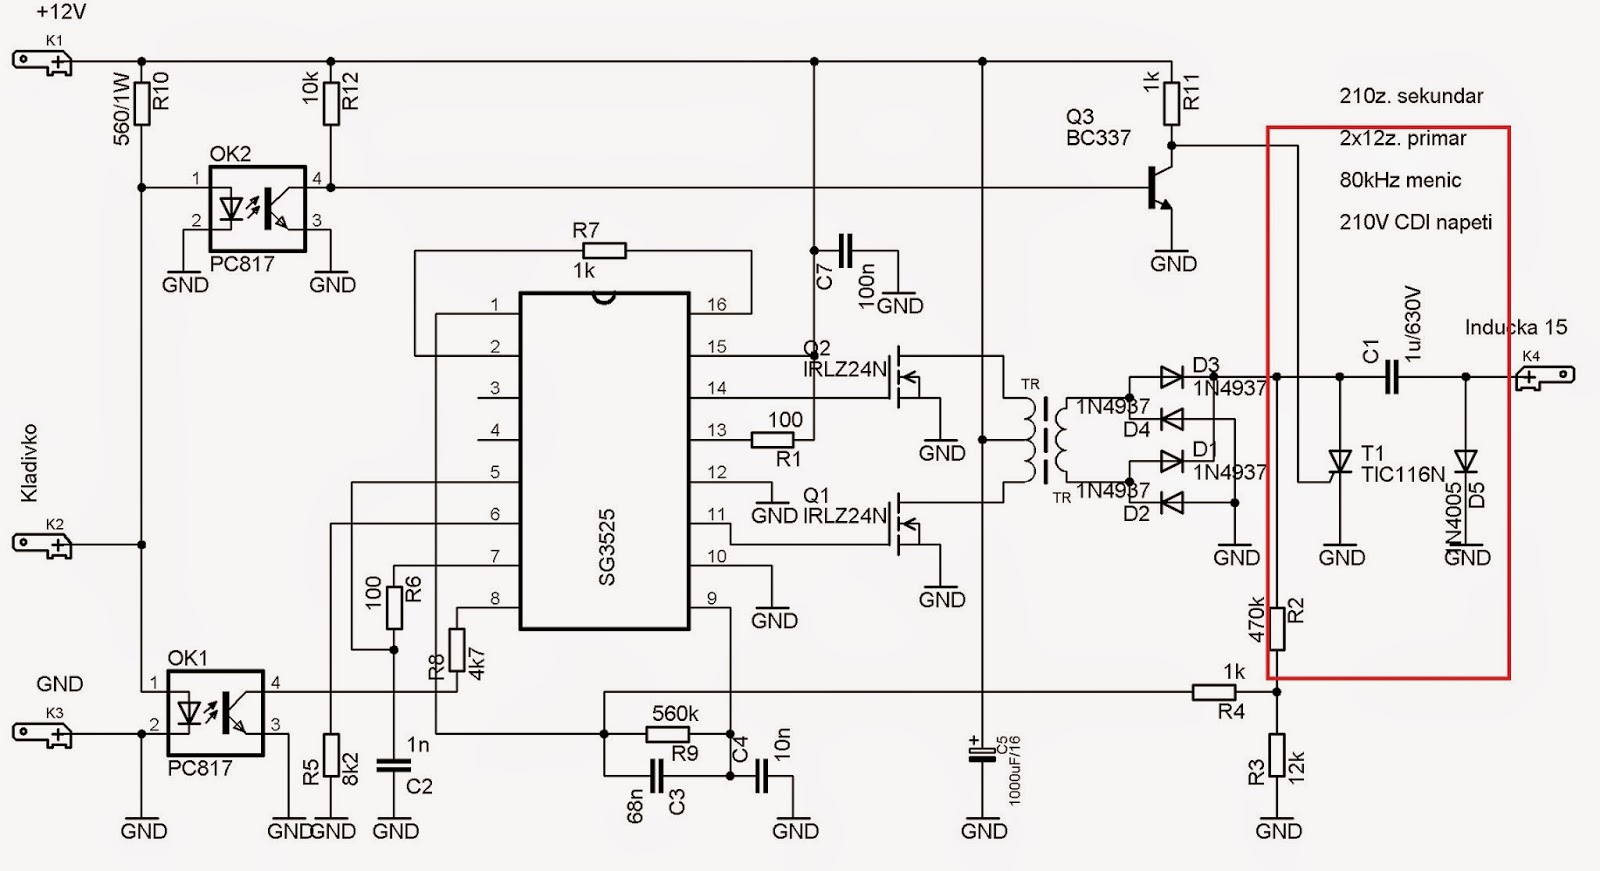 dc cdi ignition wiring diagram magneto ignition system diagram rh banyan palace com cdi box wiring [ 1600 x 871 Pixel ]